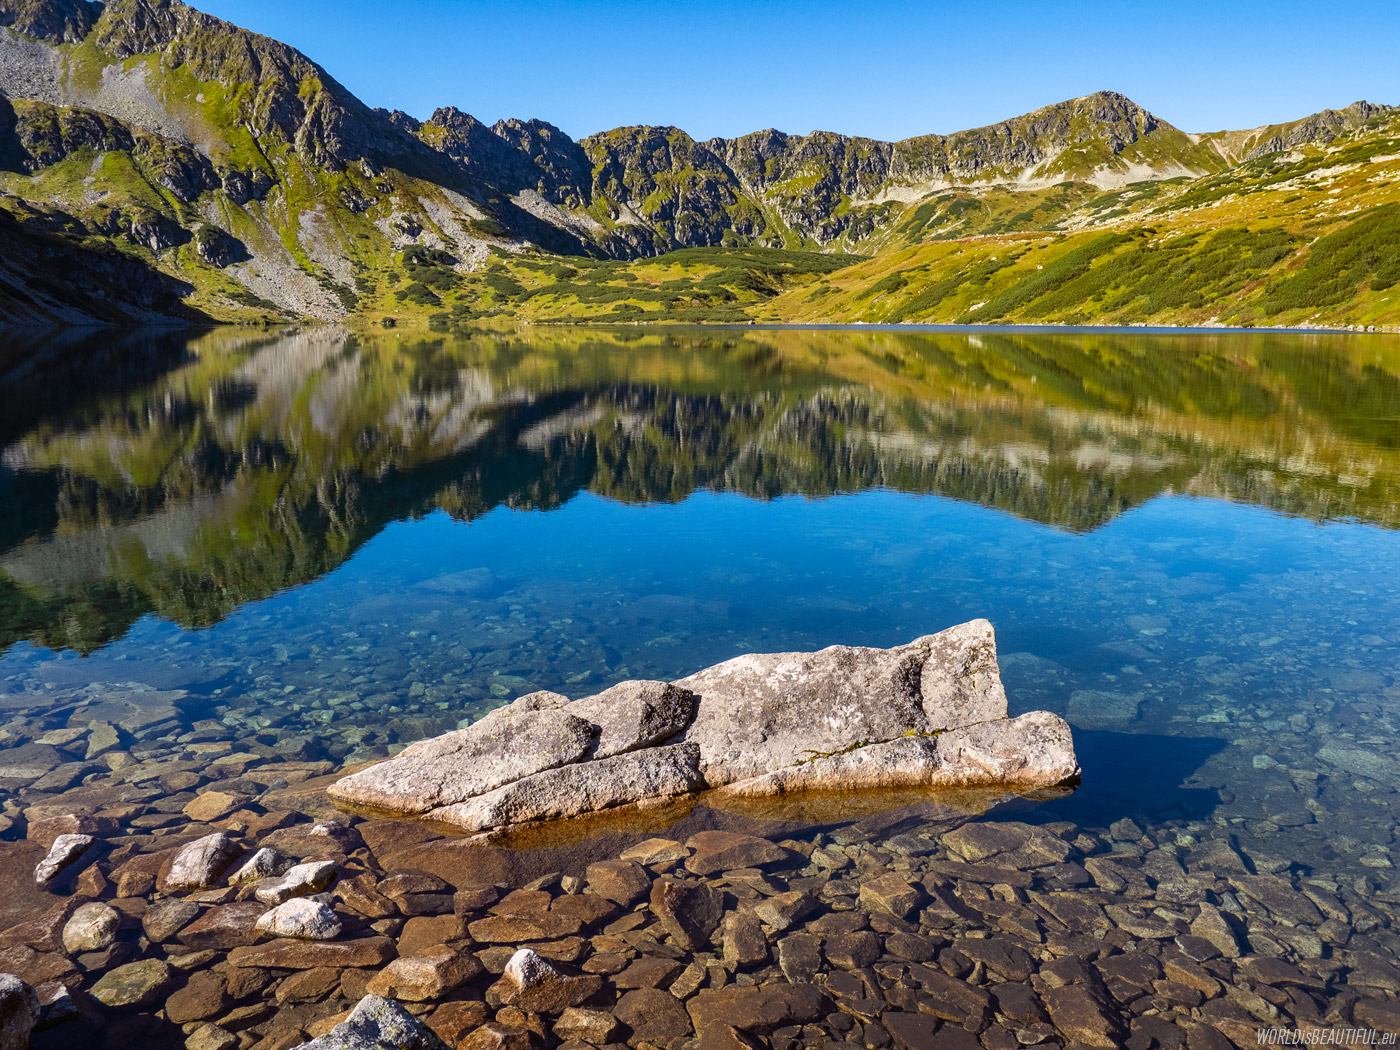 The deepest lake in the Tatras